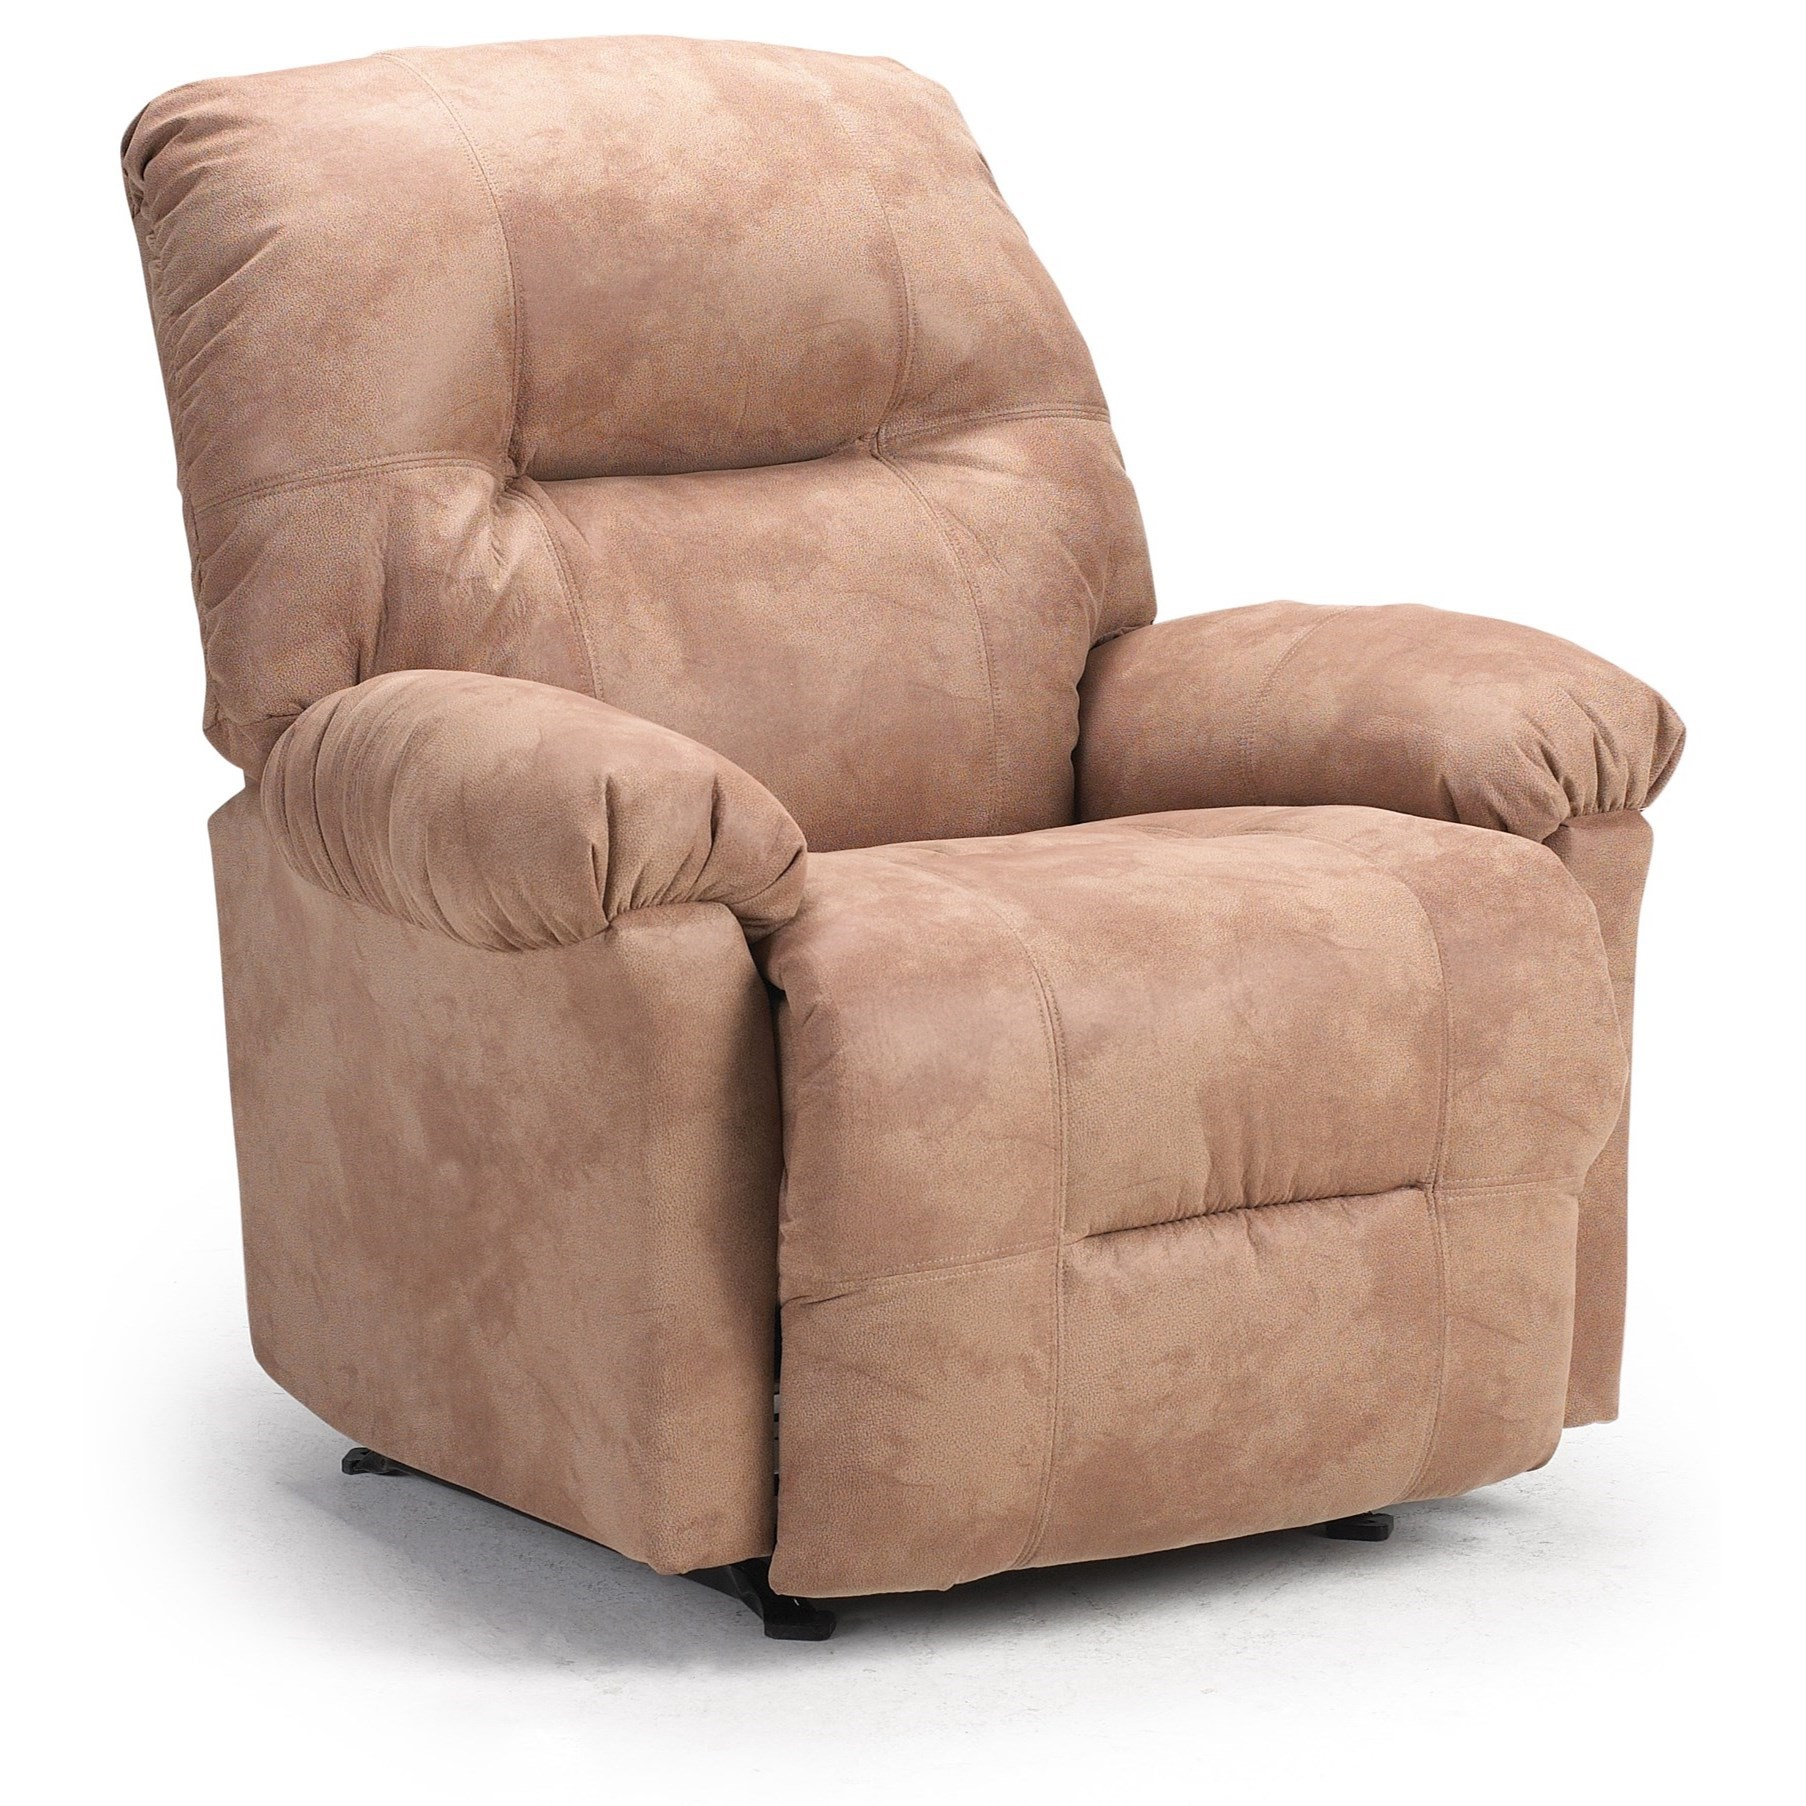 Petite Recliners Wynette Power Rocker Recliner by Best Home Furnishings at Baer's Furniture